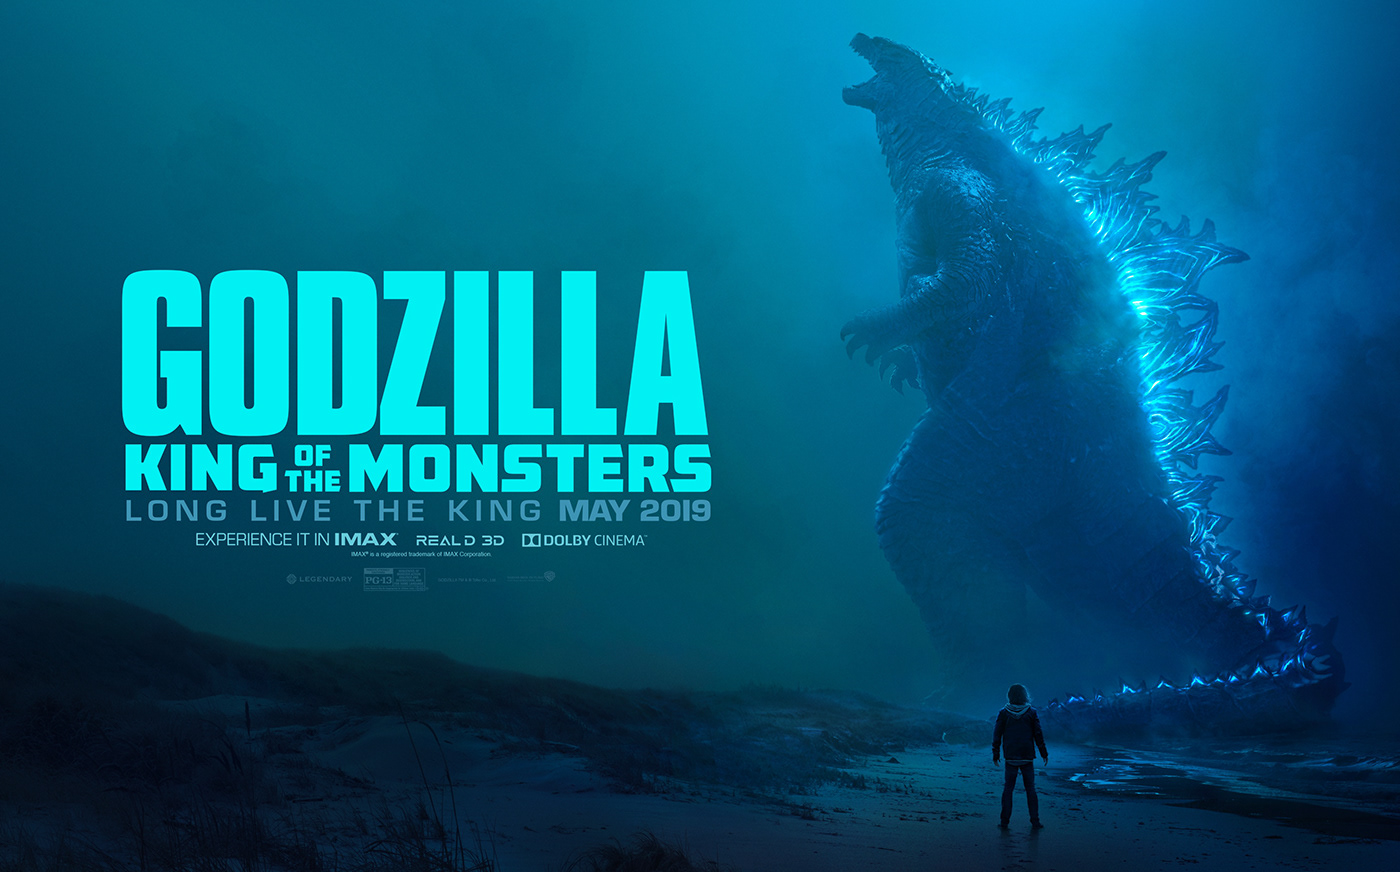 So the Godzilla 2 director wants to fix the biggest problem of MonsterVerse